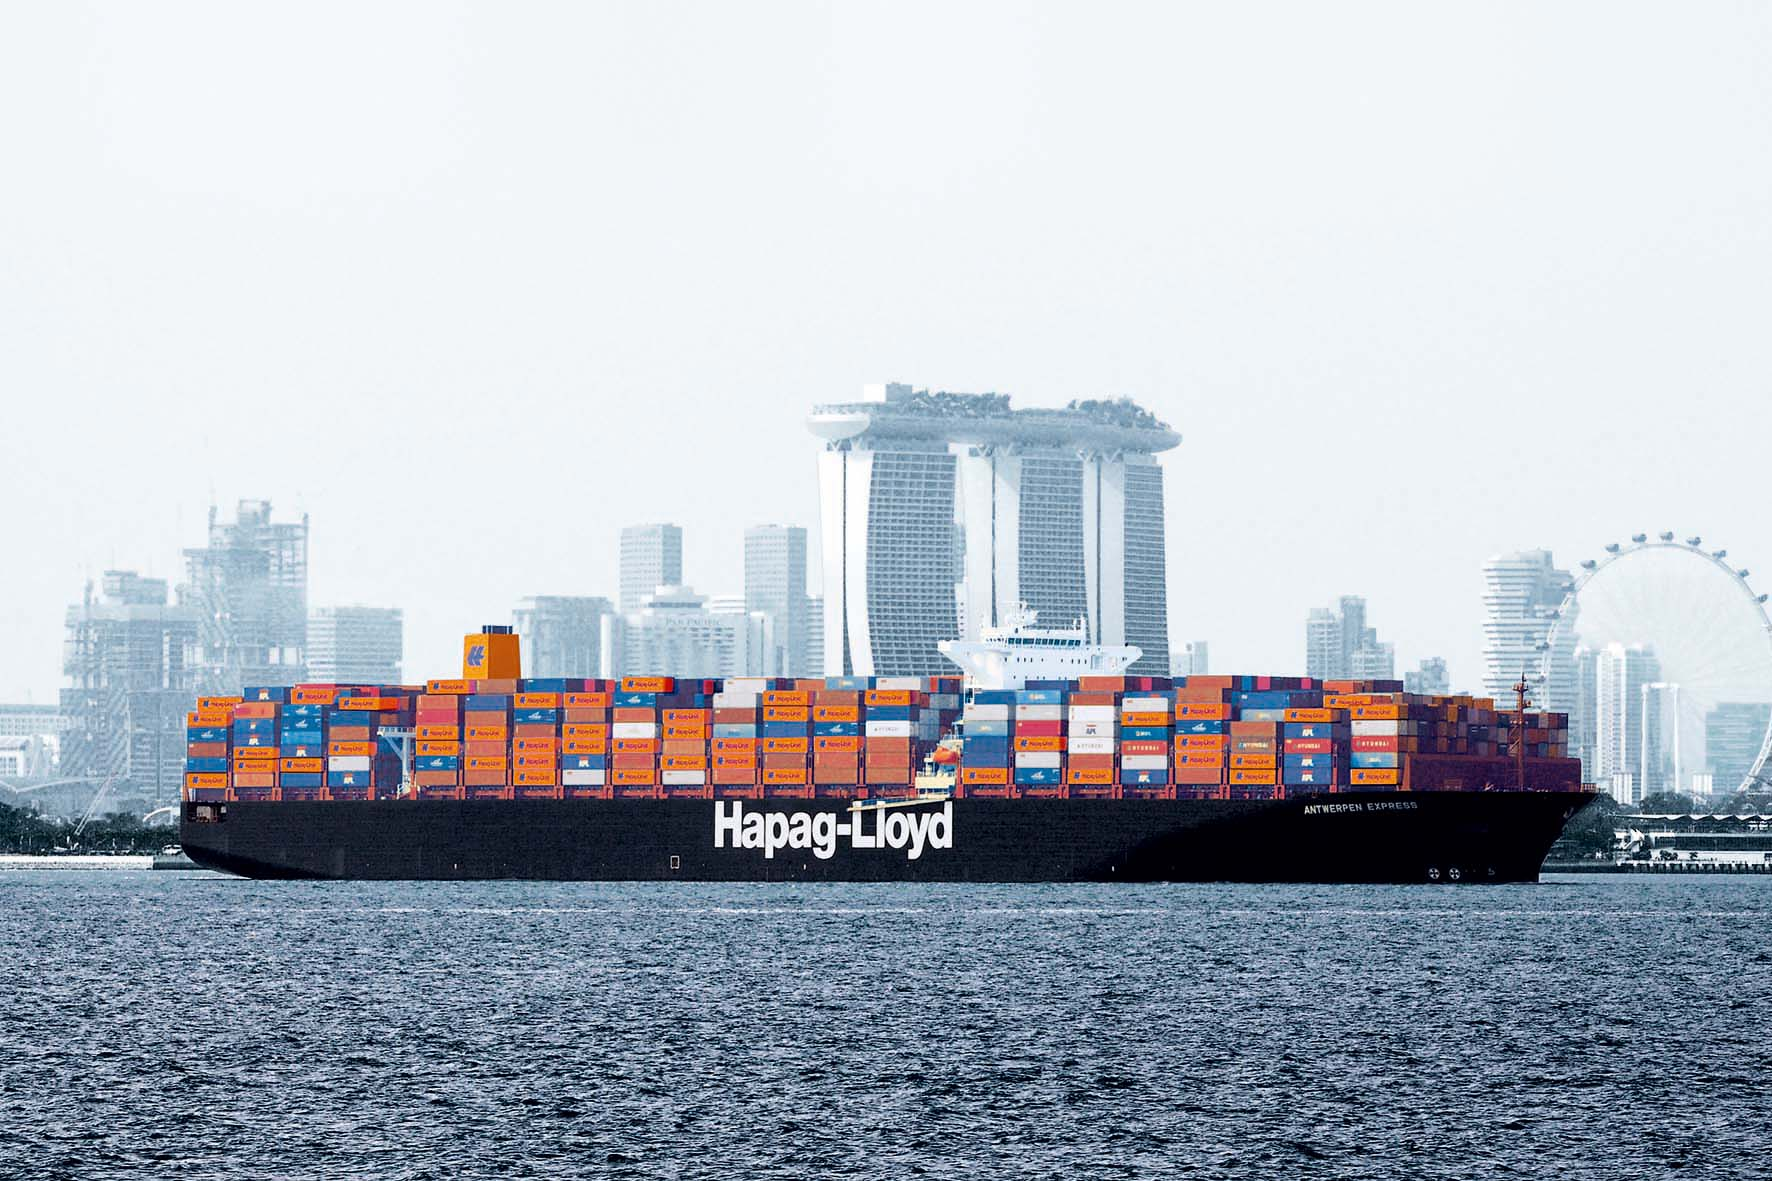 Hapag-Lloyd becomes latest carrier to bring in container